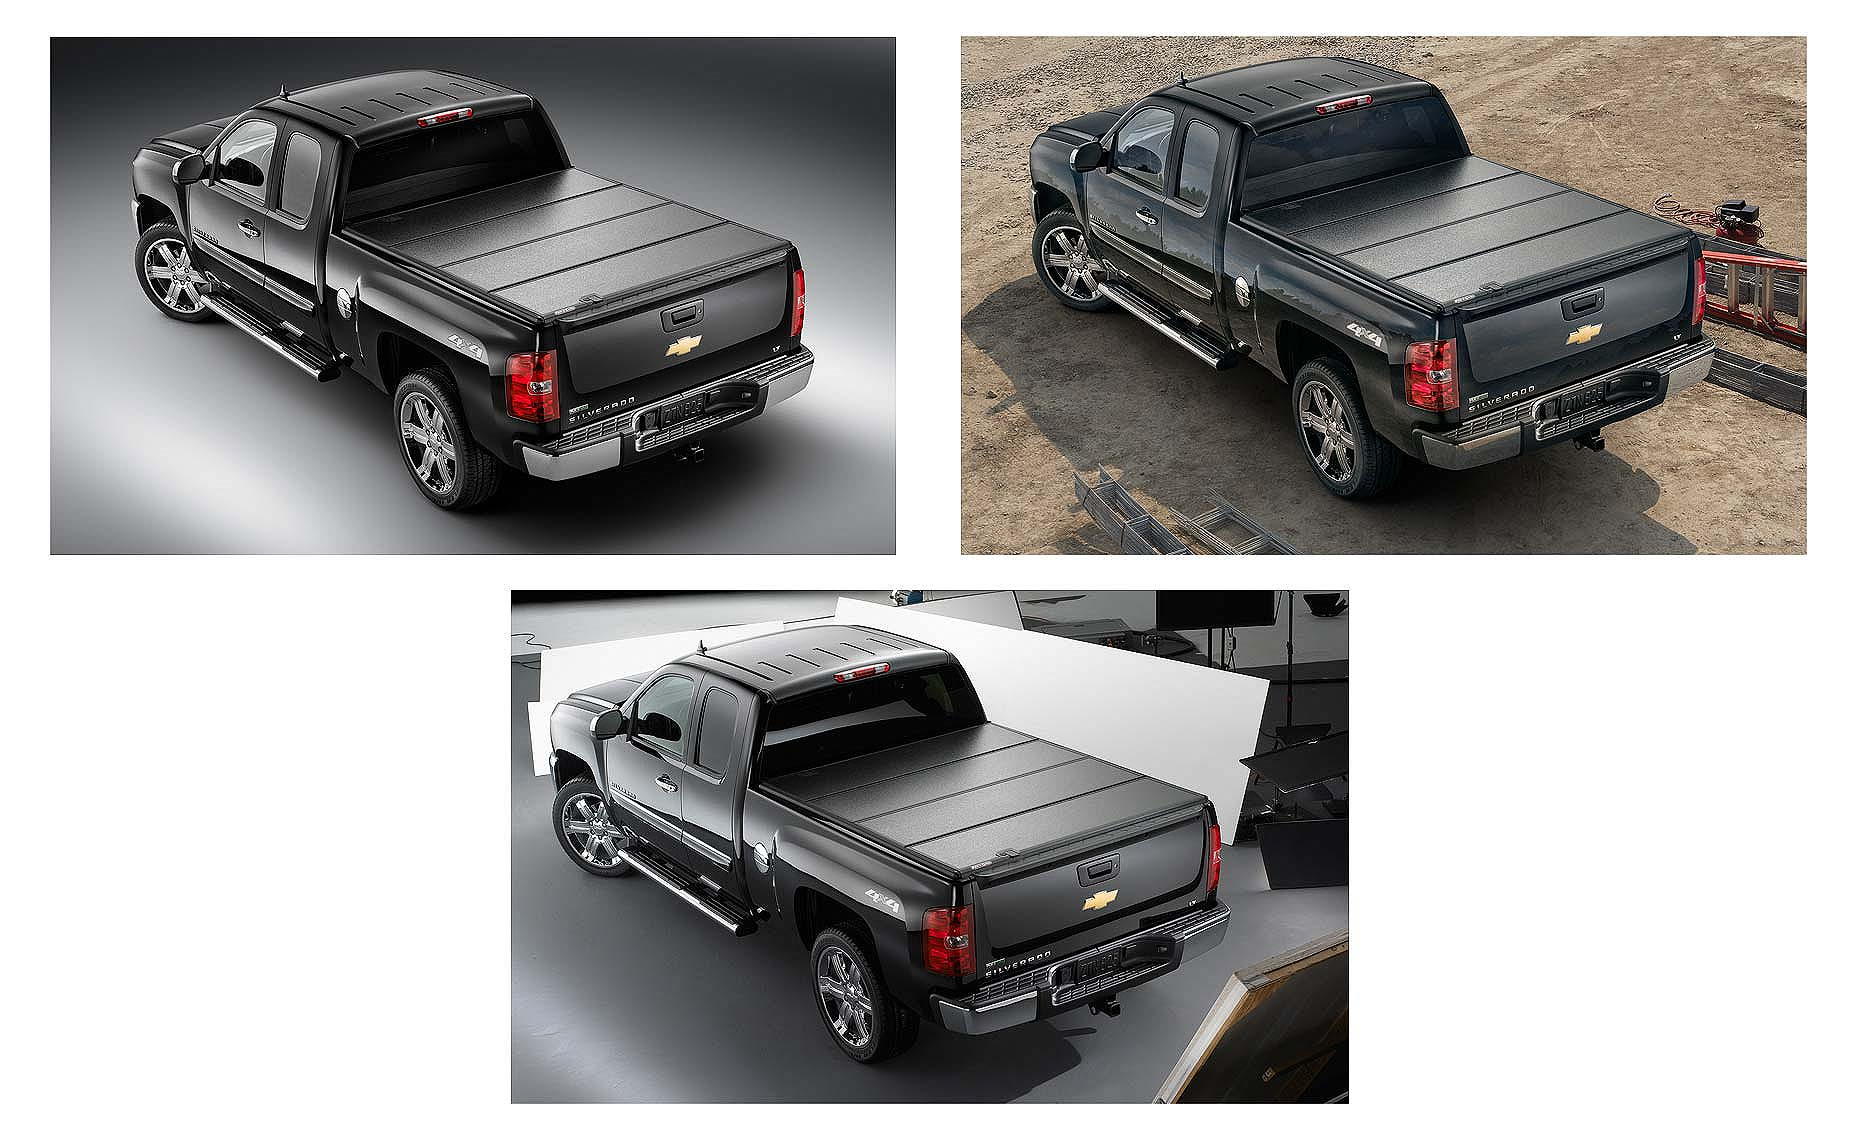 2013 chevy silverado-before-after_comp.jpg